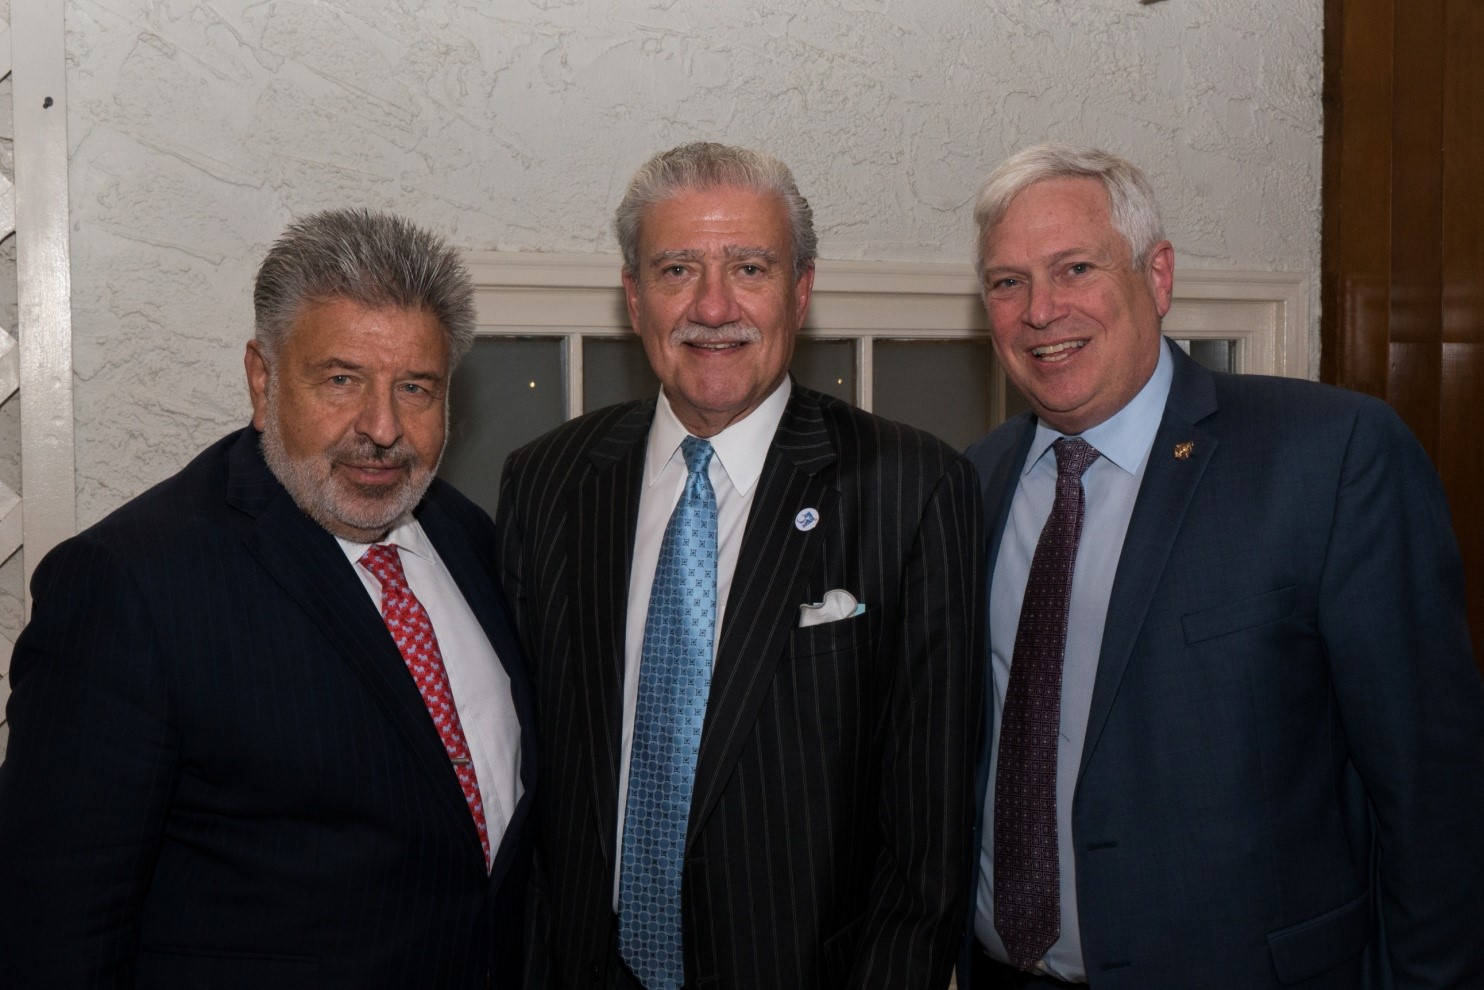 [L-R] FOUNDING PARTNERS - Steve W. Kess, Vice President Global Relations, Henry Schein, Inc and Executive Committee Project Accessible Oral Health; John D. Kemp, President & CEO, The Viscardi Center; Chairman, Project Accessible Oral Health; and Dr. Mark S. Wolff, Morton Amsterdam Dean (Effective 1 July 2018), University of Pennsylvania, School of Dental Medicine and Project Accessible Oral Health Executive Committee.